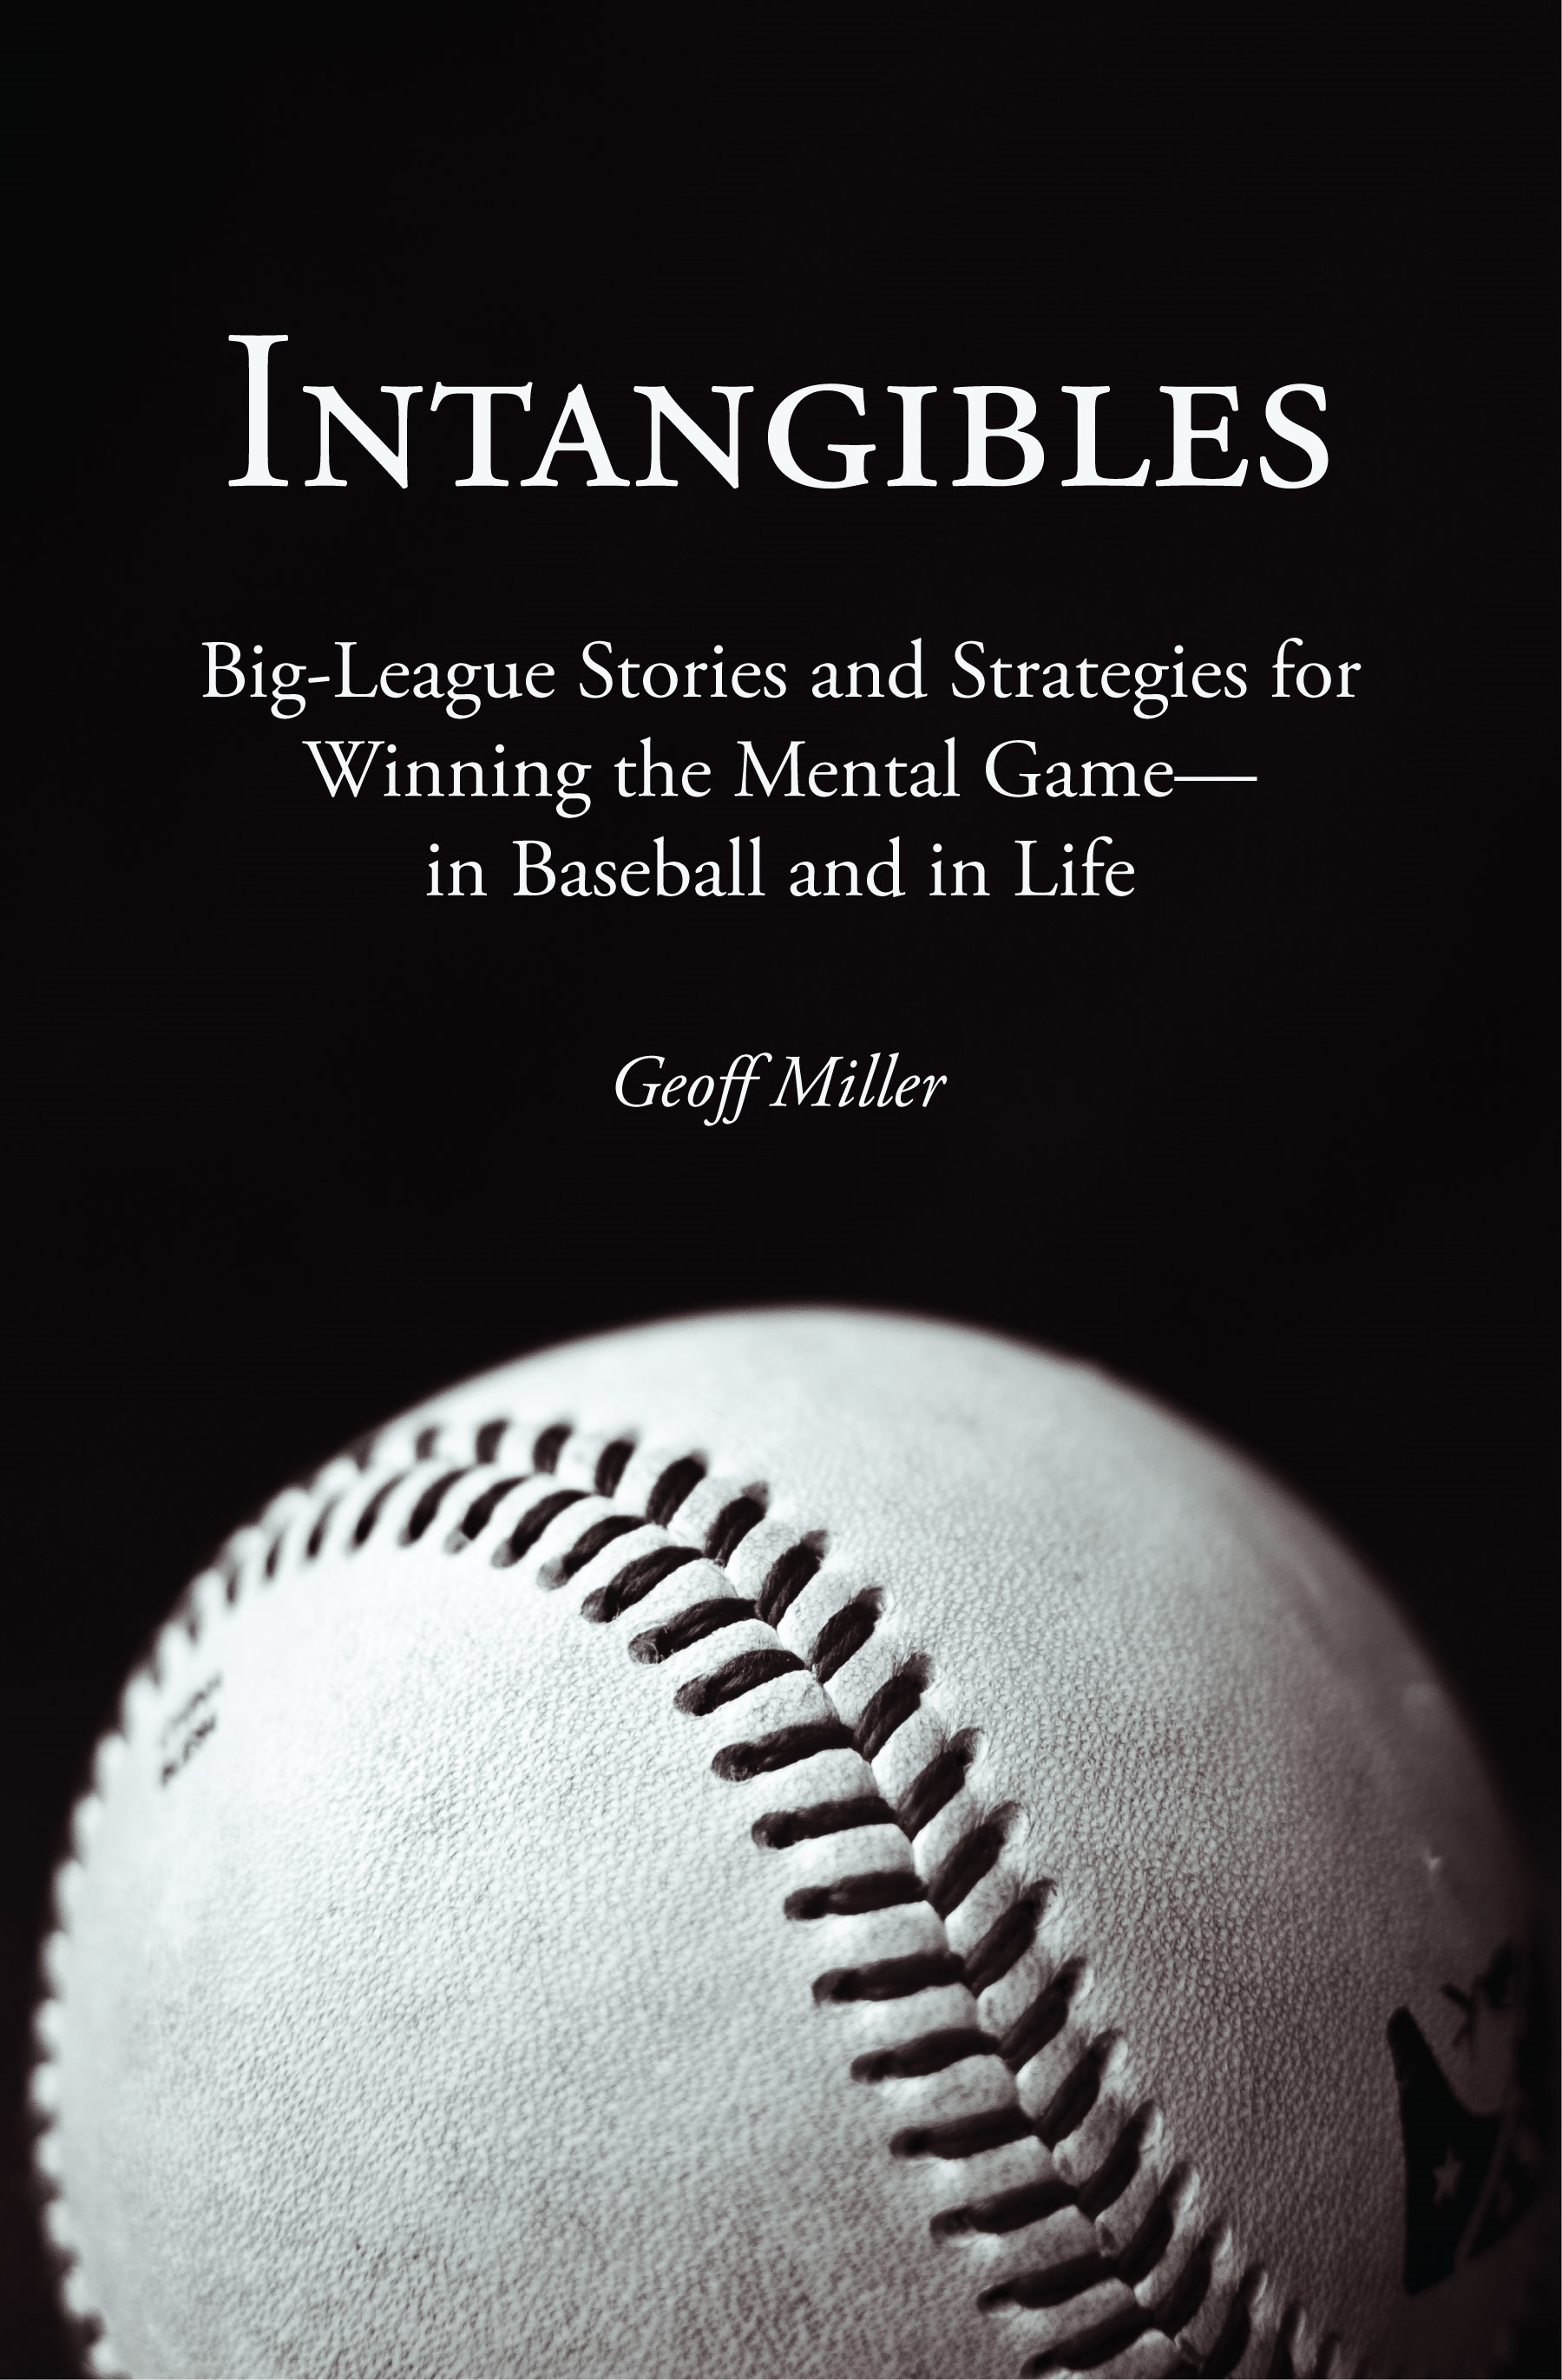 Intangibles: Big-League Stories and Strategies for Winning the Mental Game?in Baseball and in Life